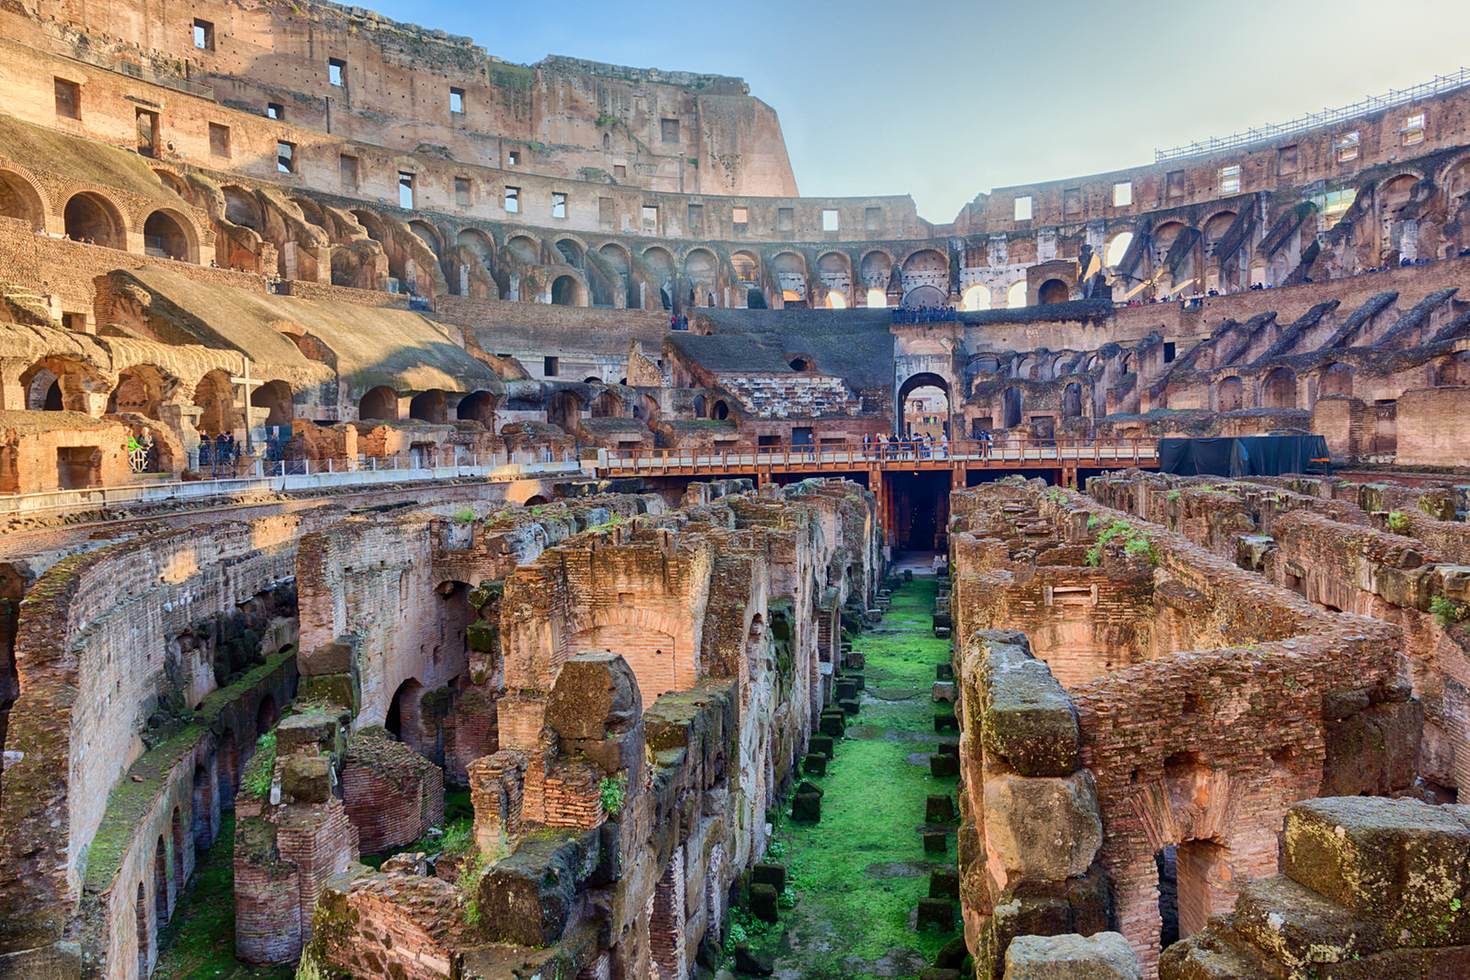 The Colosseum, Rome © Steve Whiston / Fallen Log Photography / Getty Images